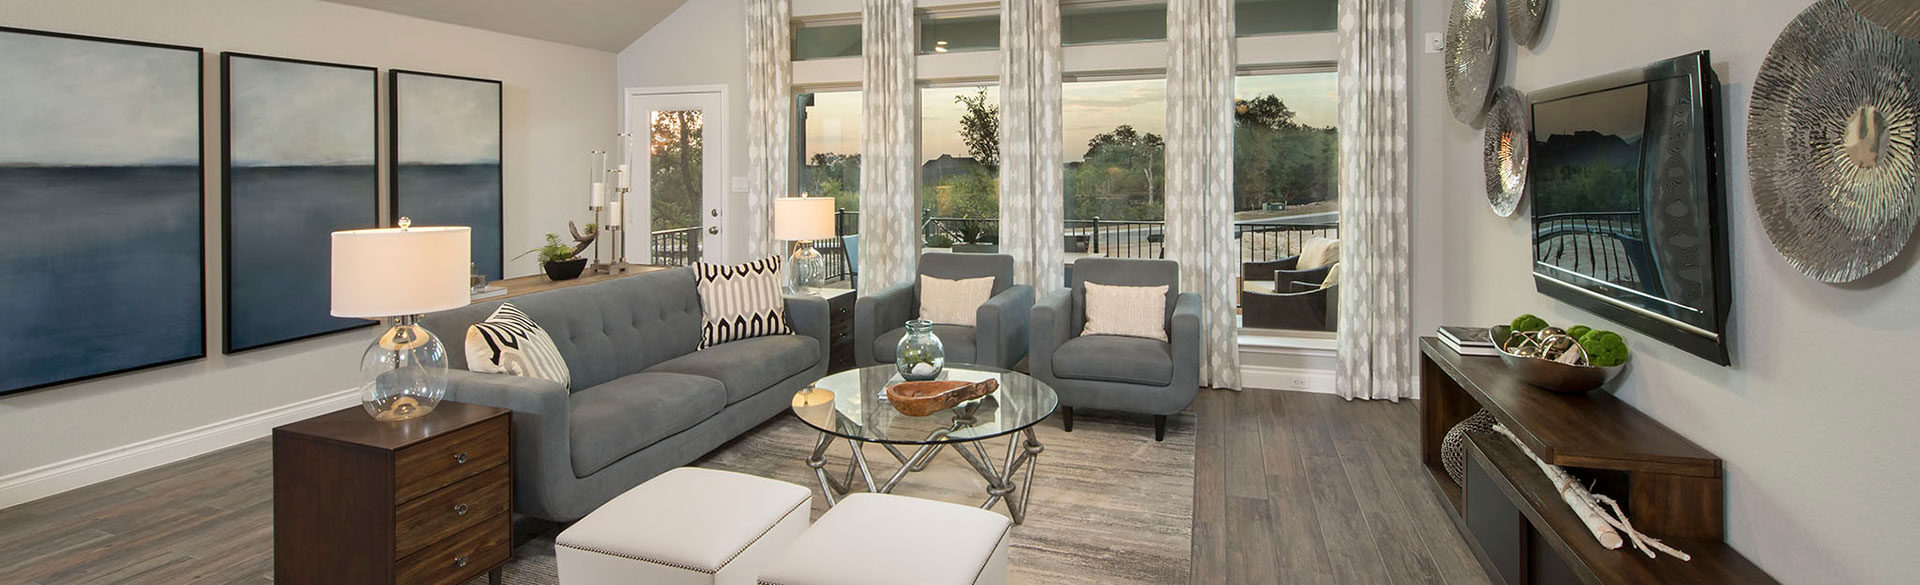 Rancho Sienna Perry Homes Model Home Plan 2529S Living Room